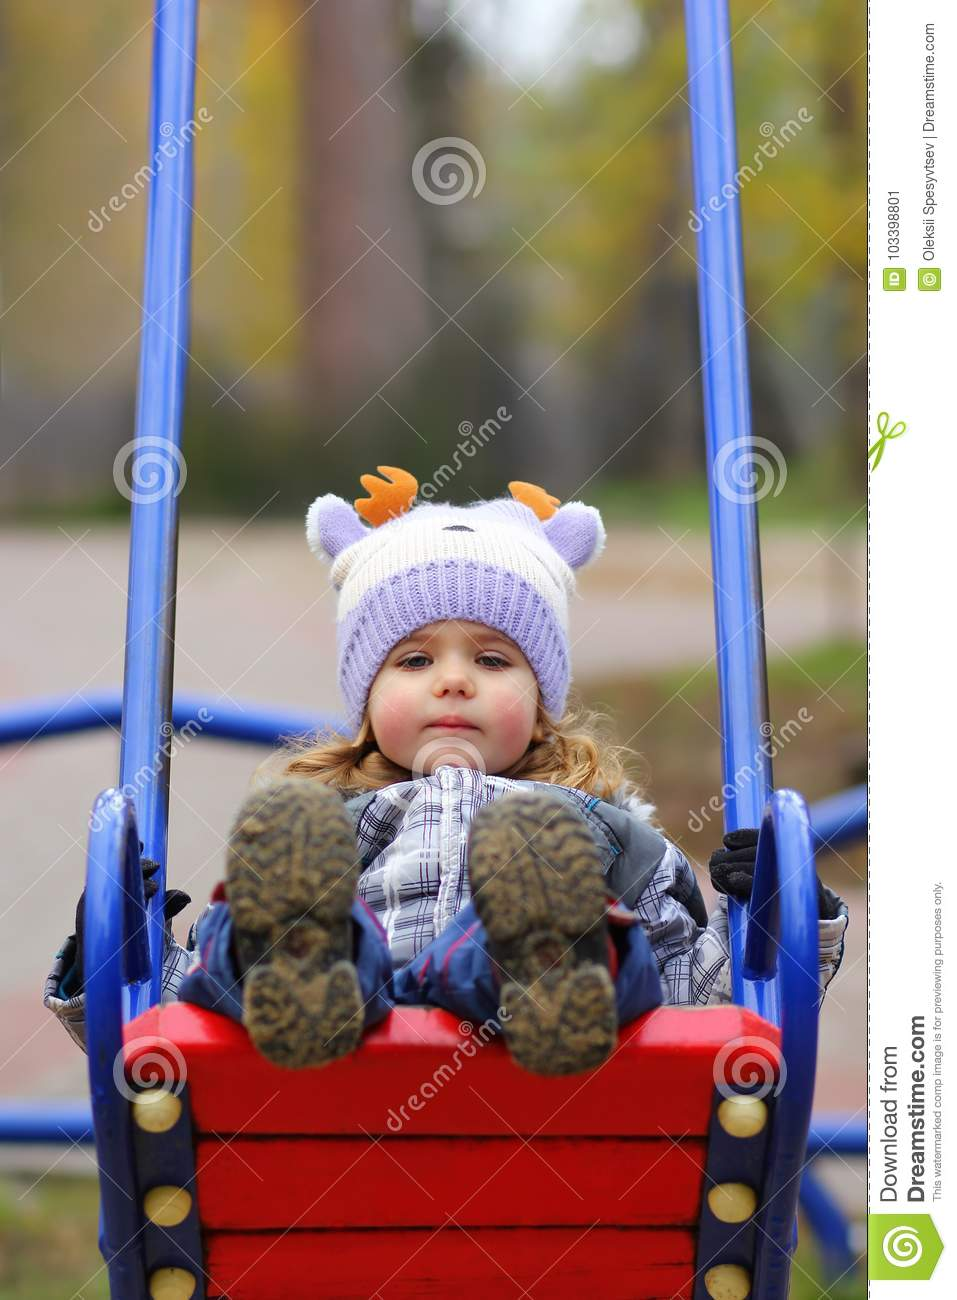 Baby girl in a funny hat swinging on the winter playground, perspective point of view.